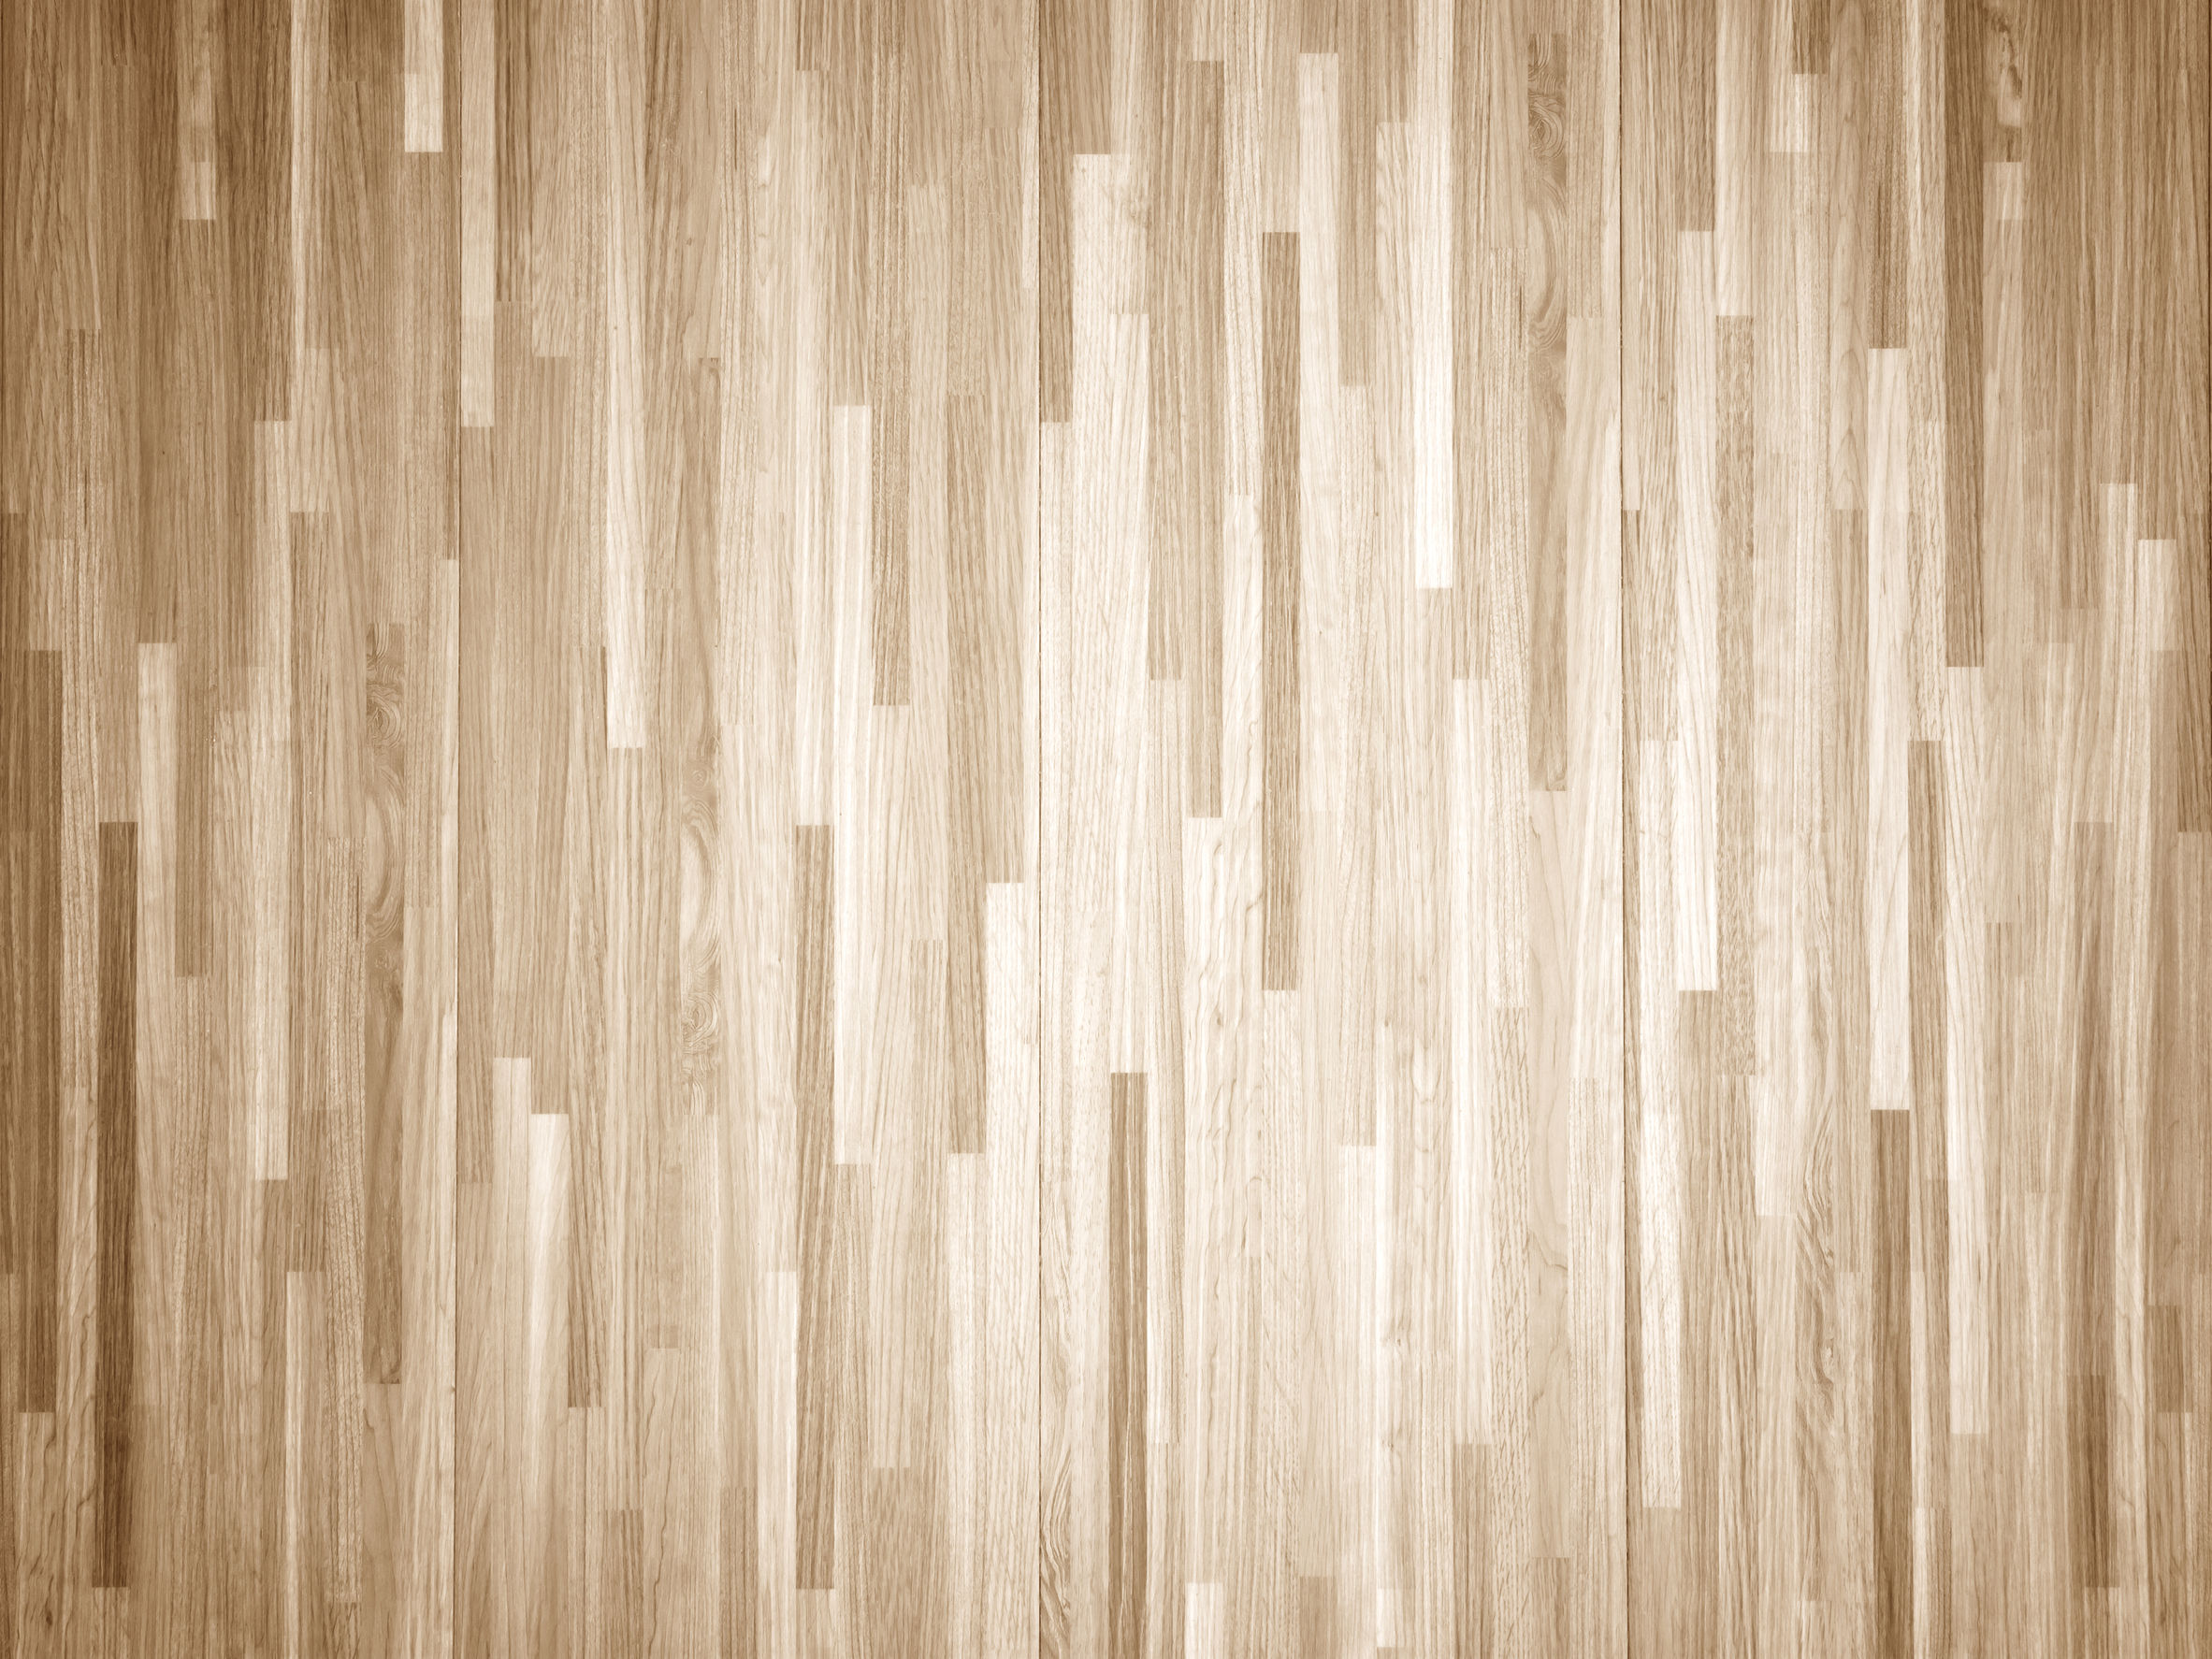 How to chemically strip wood floors for Floating hardwood floor